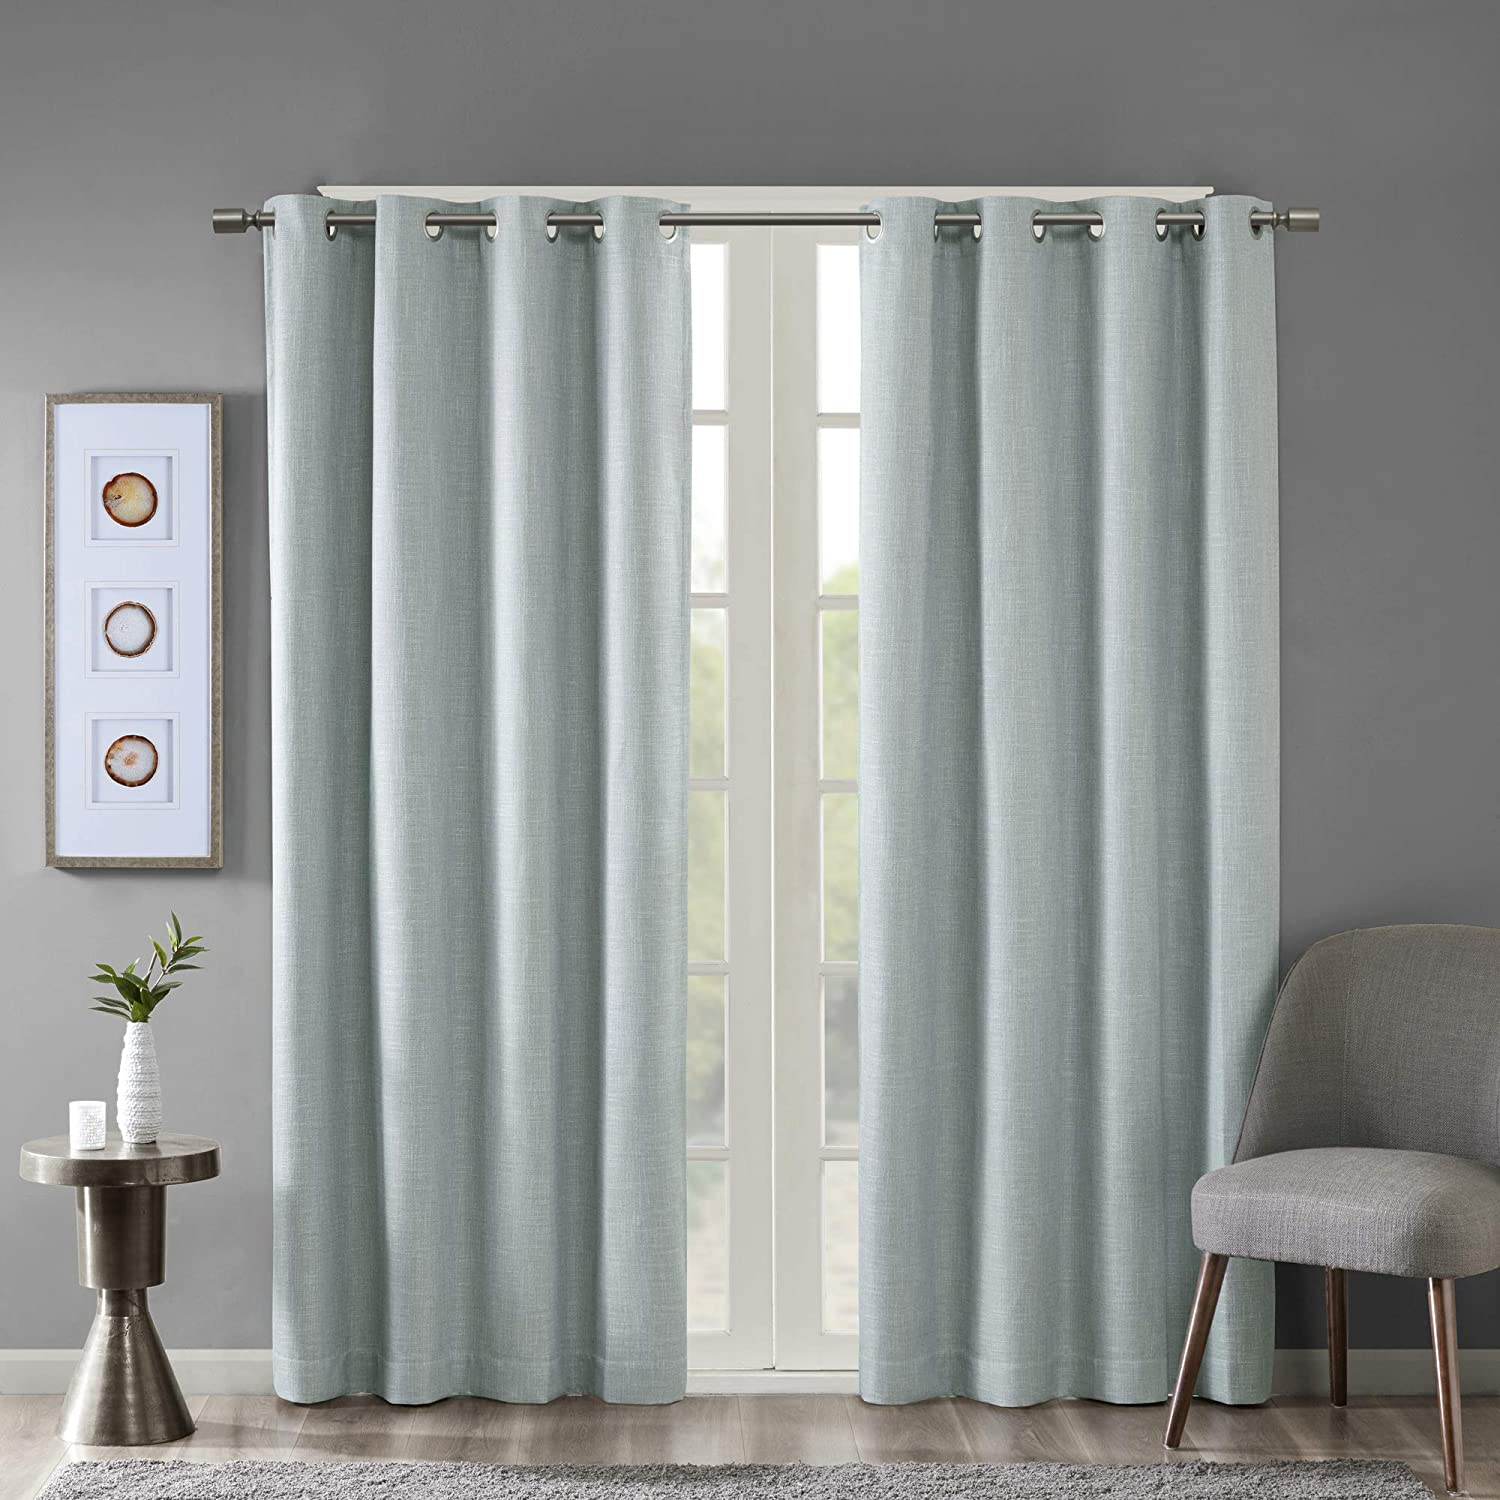 SUN SMART Maya Blackout Curtains Patio Window, Textured Heatherd Print, Grommet Top Living Room Decor Thermal Insulated Light Blocking Drape for Bedroom and Apartments, 50x95, Aqua